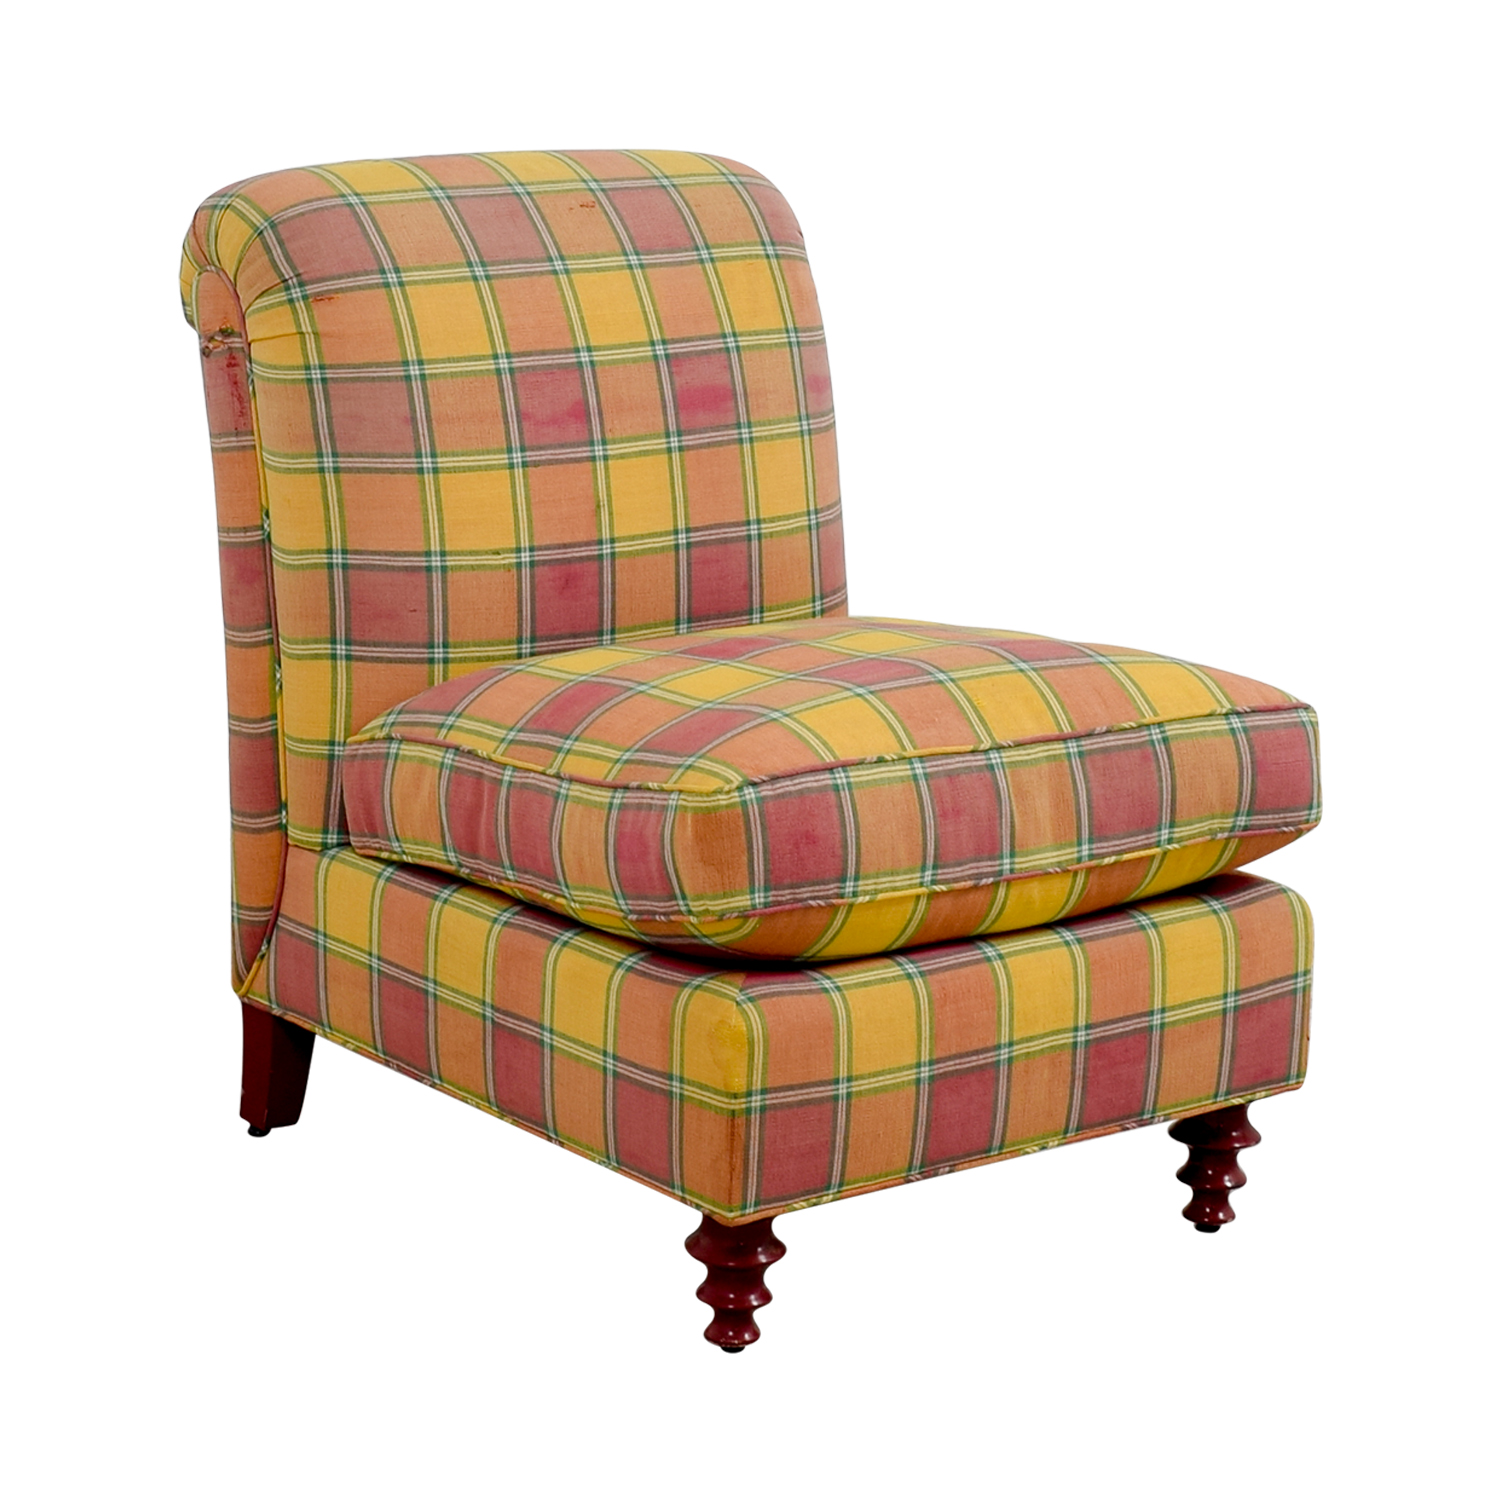 Superb 90 Off Furniture Masters Furniture Masters Red And Yellow Plaid Accent Chair Chairs Gmtry Best Dining Table And Chair Ideas Images Gmtryco